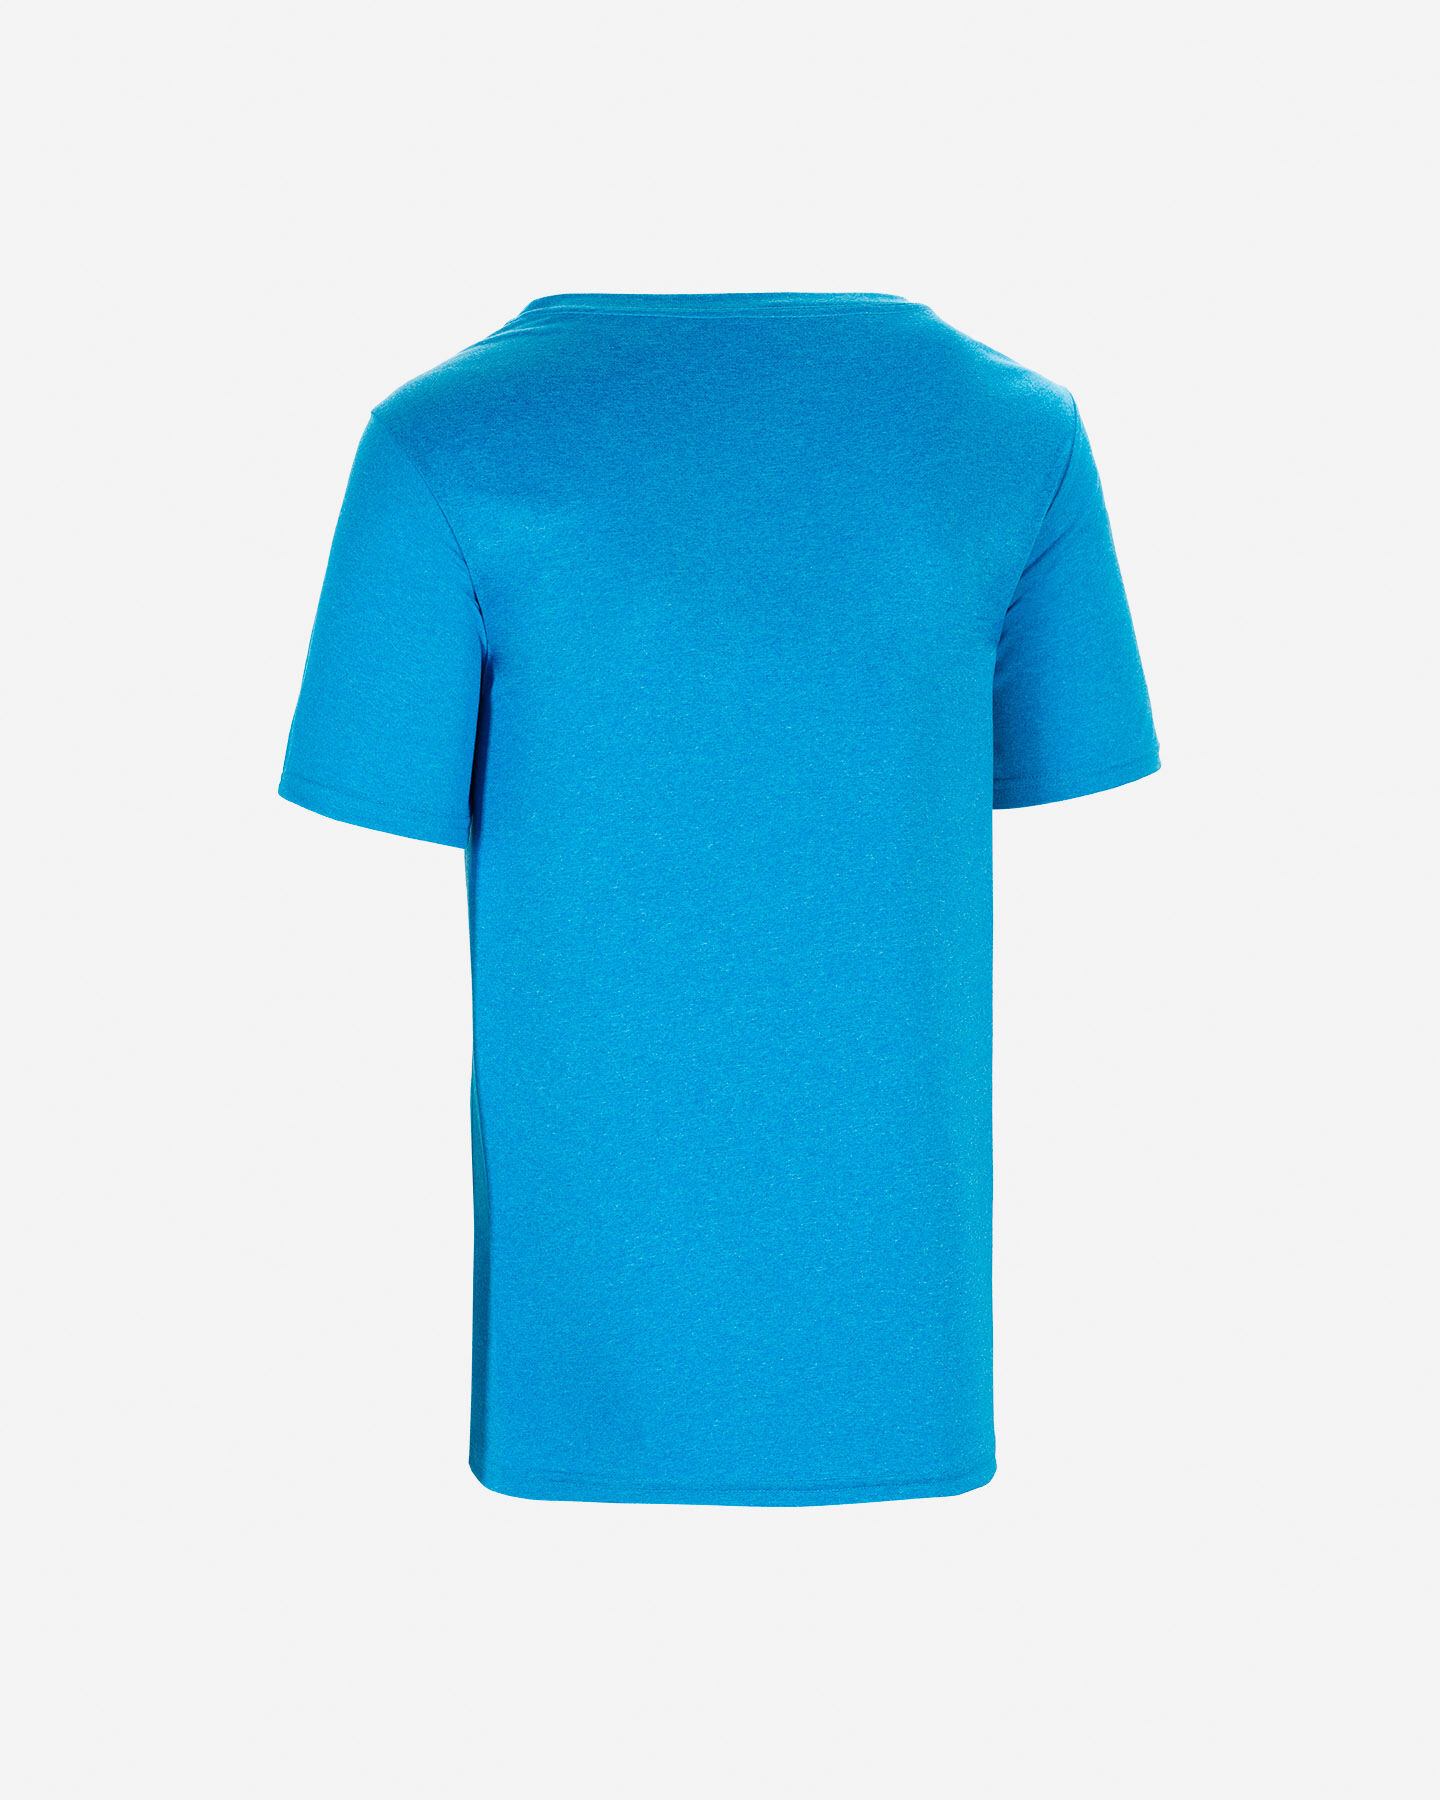 T-Shirt THE NORTH FACE REAXION AMP M S5182554 scatto 1